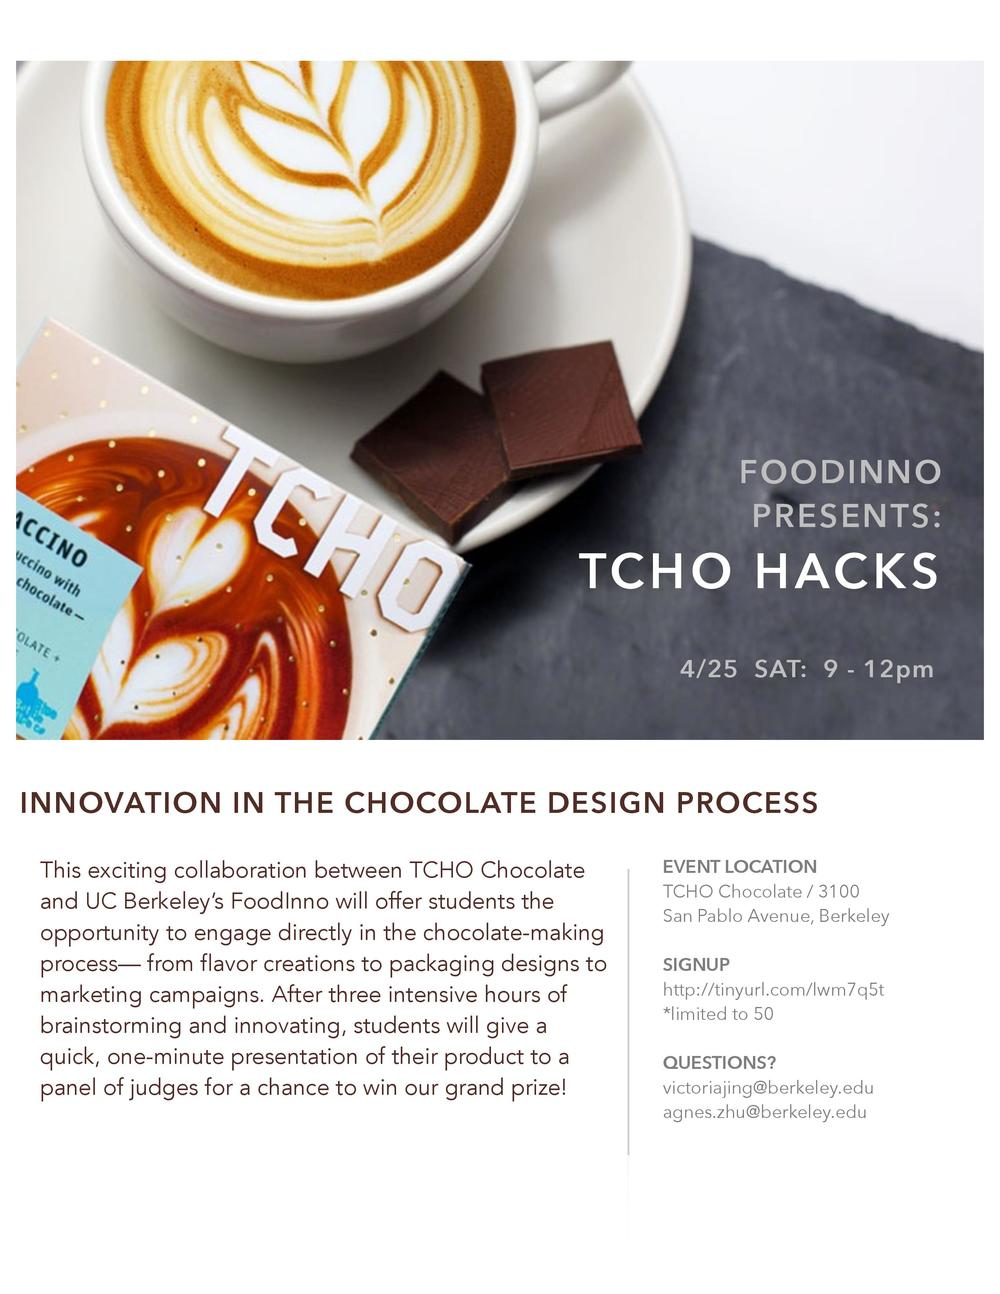 TCHO HACKS FLYER 2.0-page-001.jpg